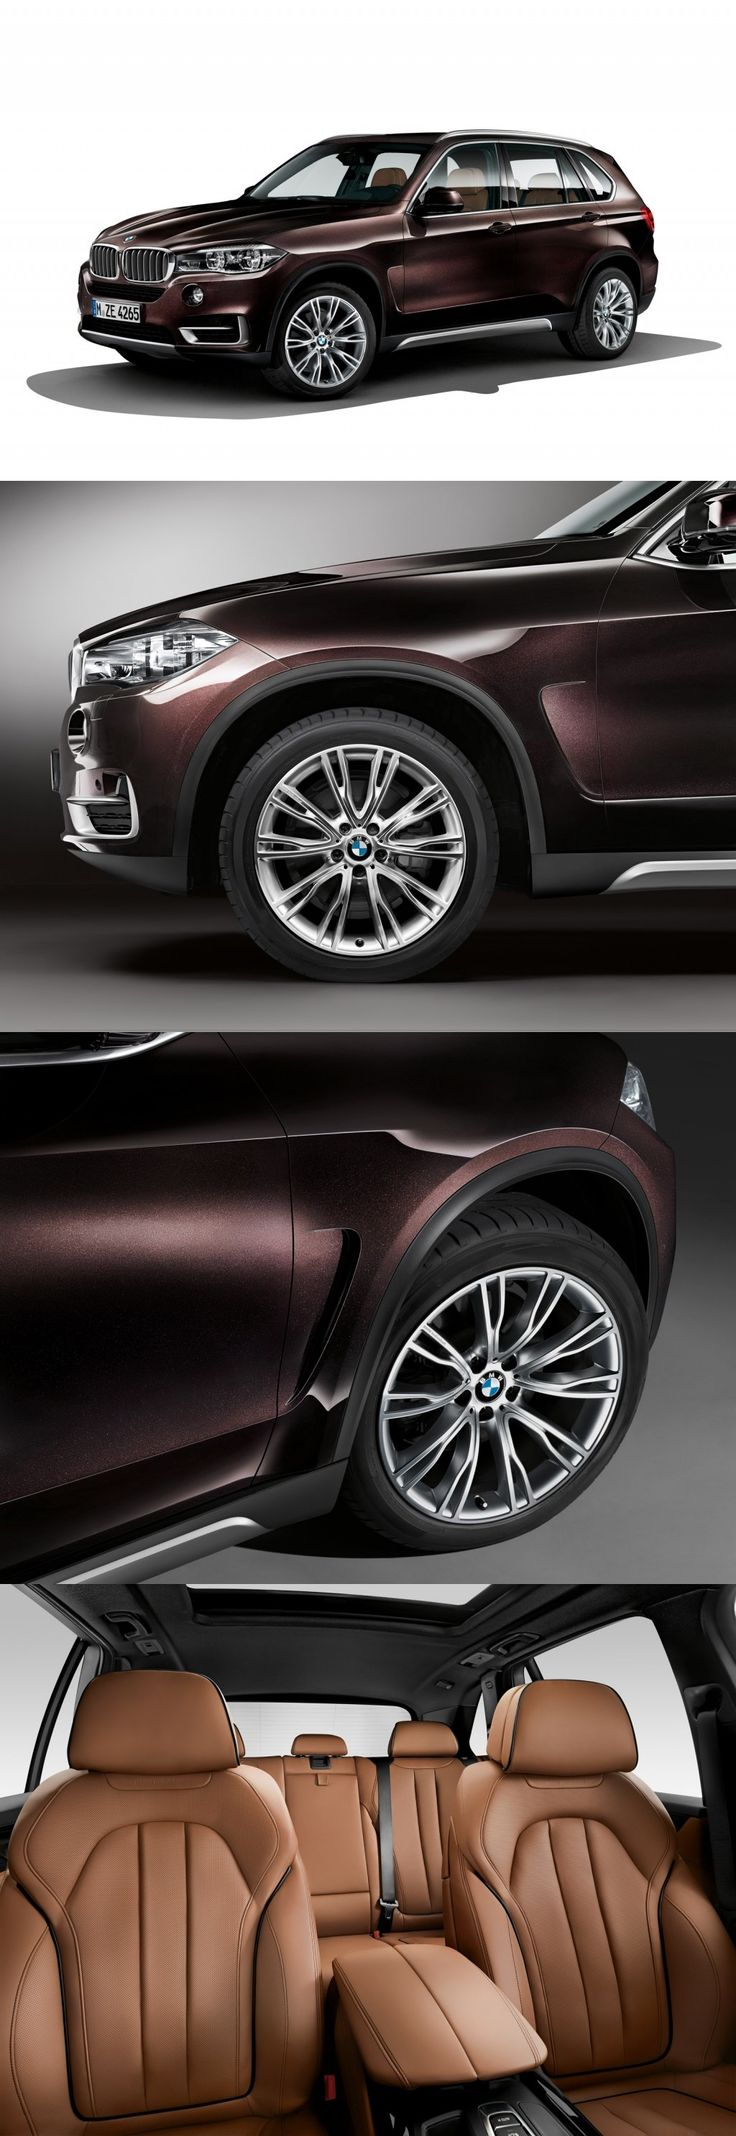 2014 BMW X5 enhanced by BMW Individual #bmw #mystyle #reneewalton